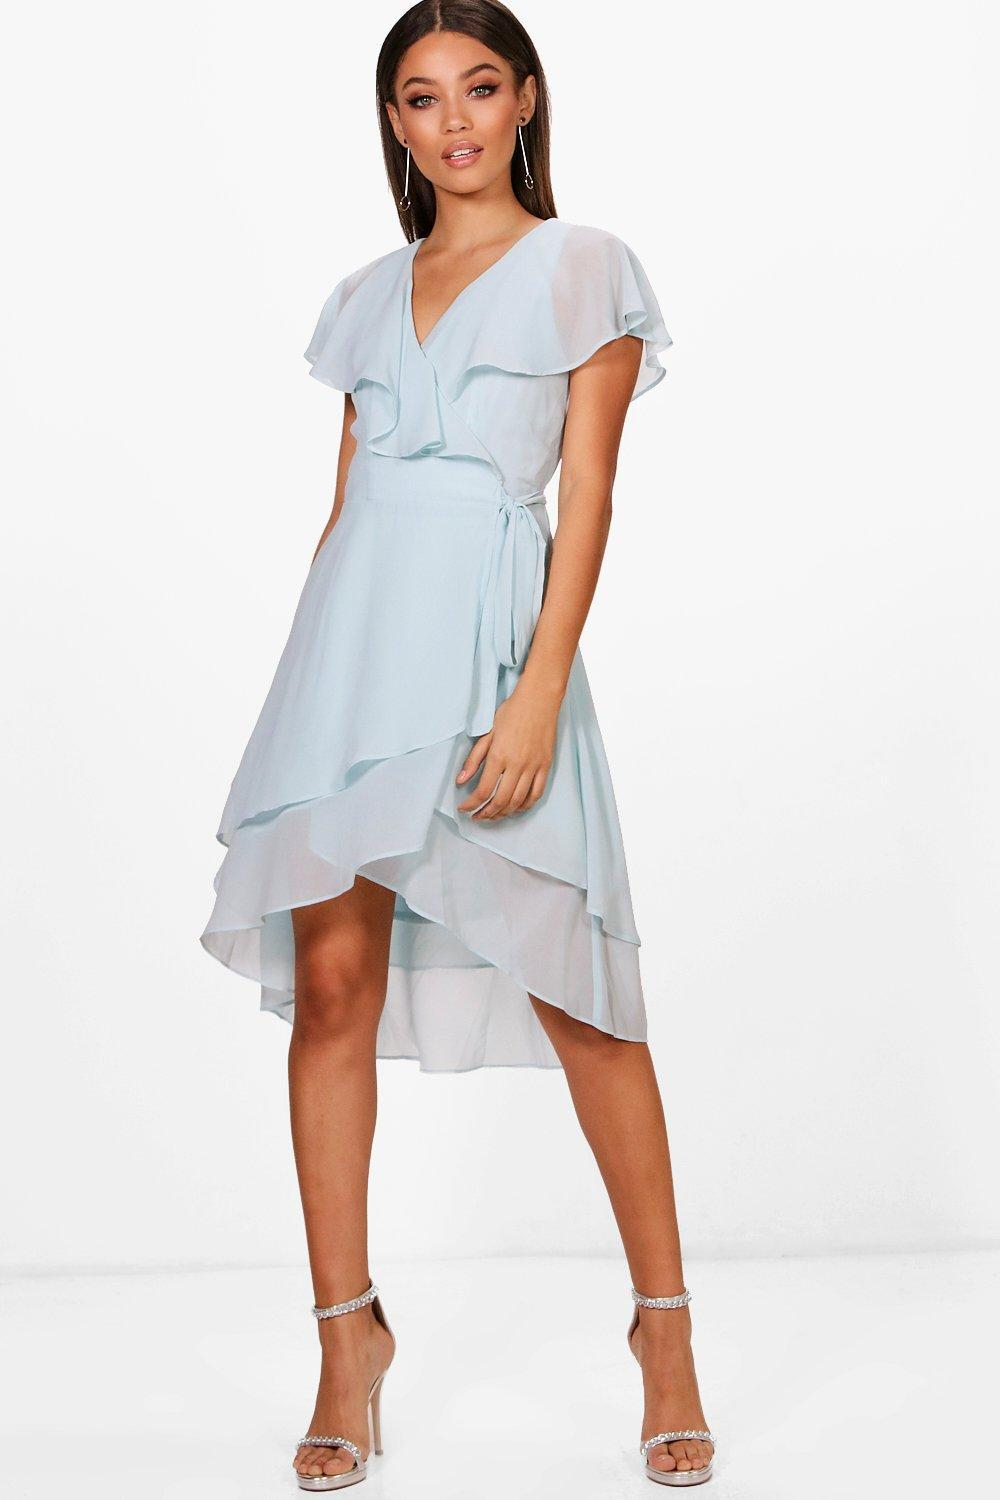 Boohoo Stripe Tie Wrap Midi Skater Dress New Arrival For Sale Latest Online Top Quality Cheap Online Cheap Original 1crSpfy